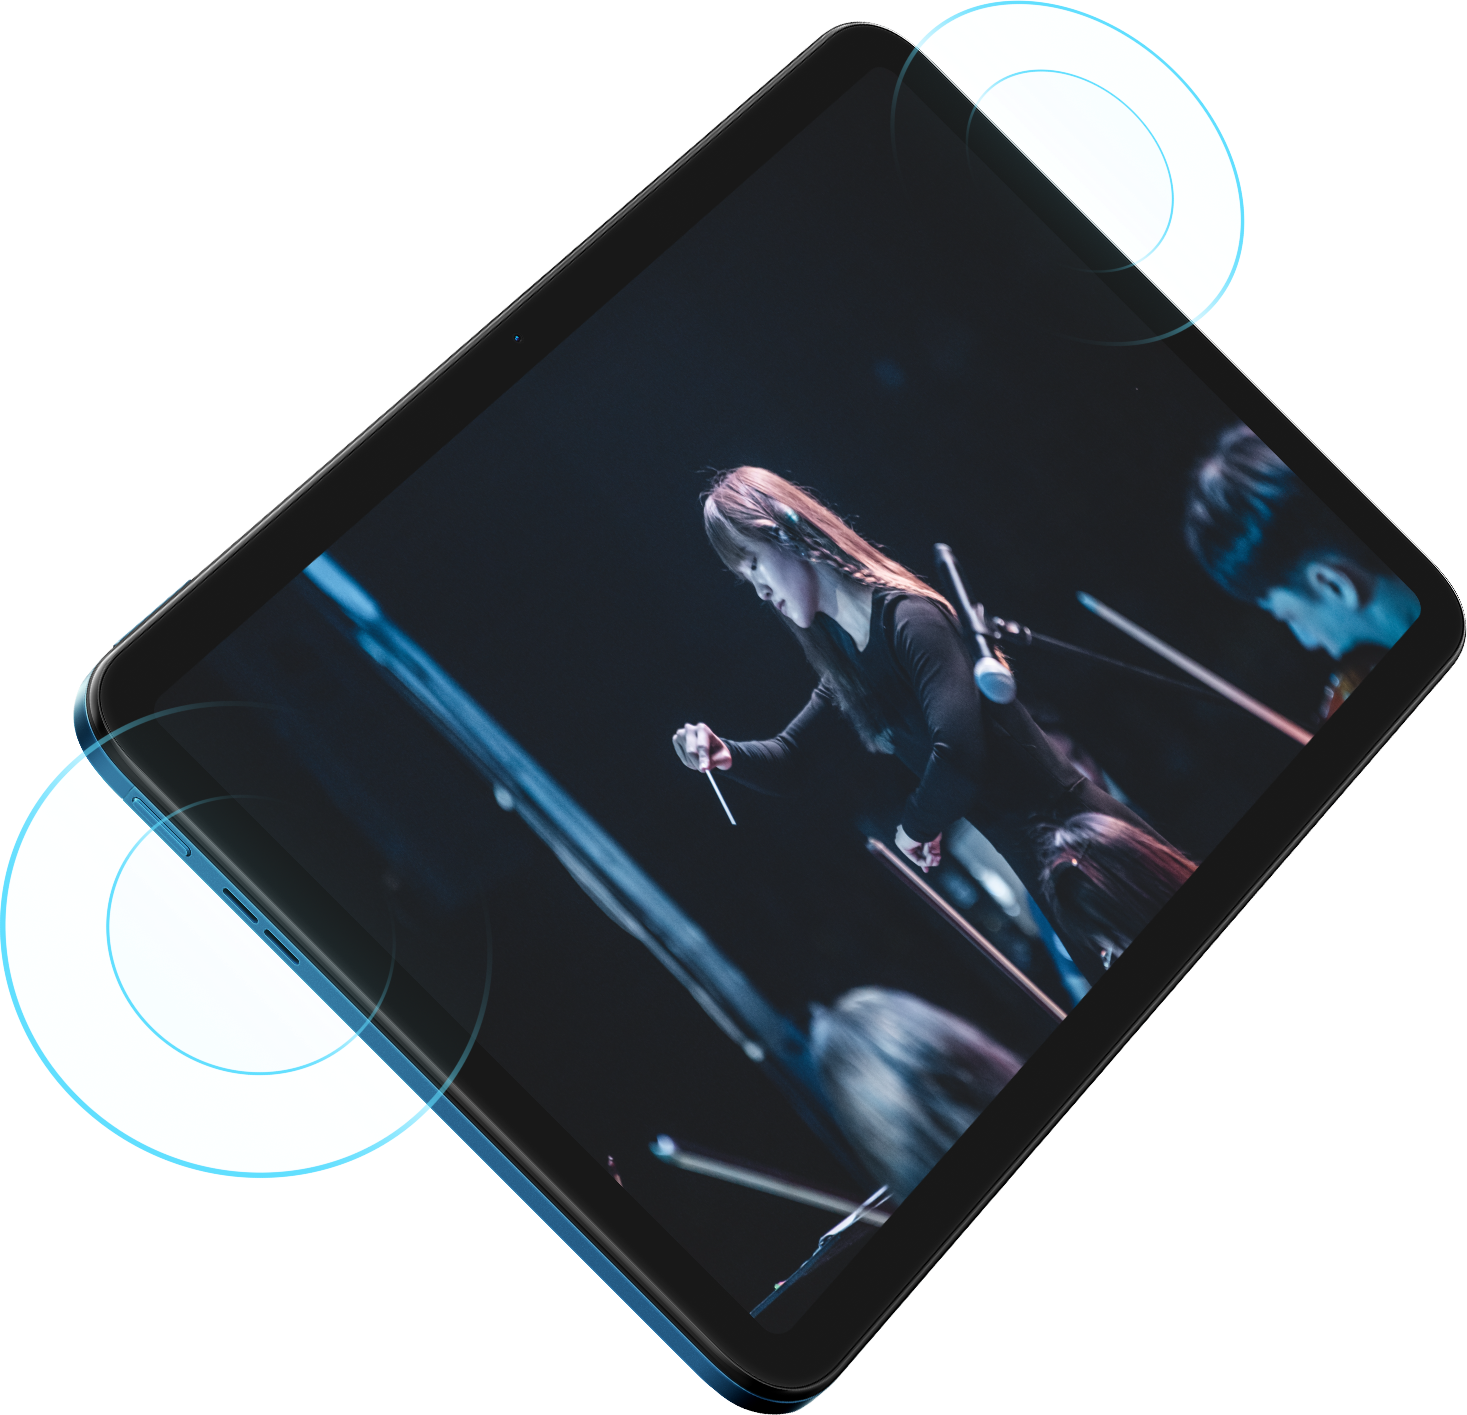 An image of a performer displayed on the Nokia T20 tablet with a visualisation of sound from the device speakers